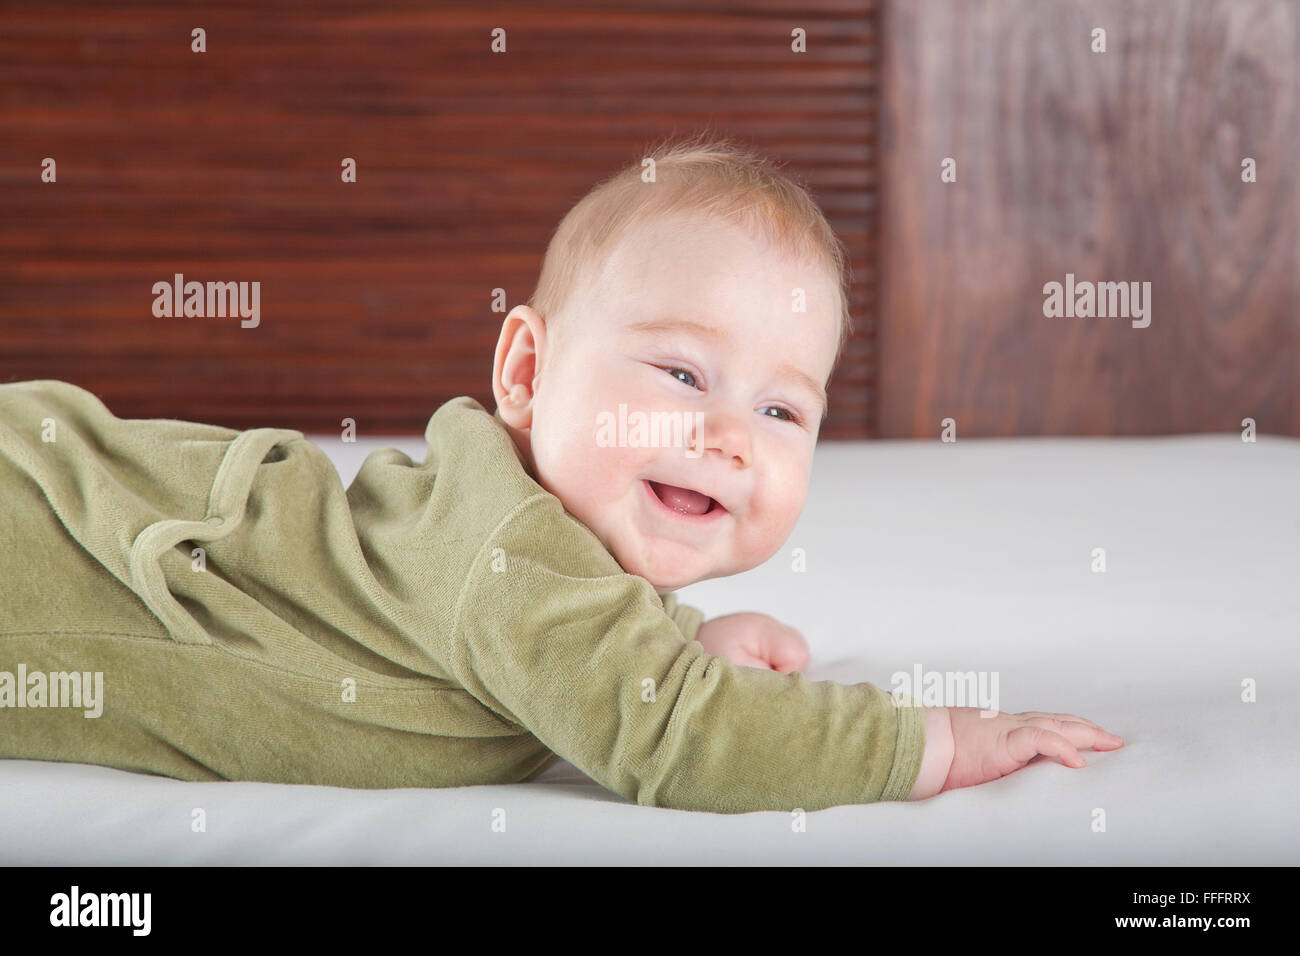 six months age blonde baby green velvet onesie lying on white sheet bed with brown wood background smiling happy Stock Photo